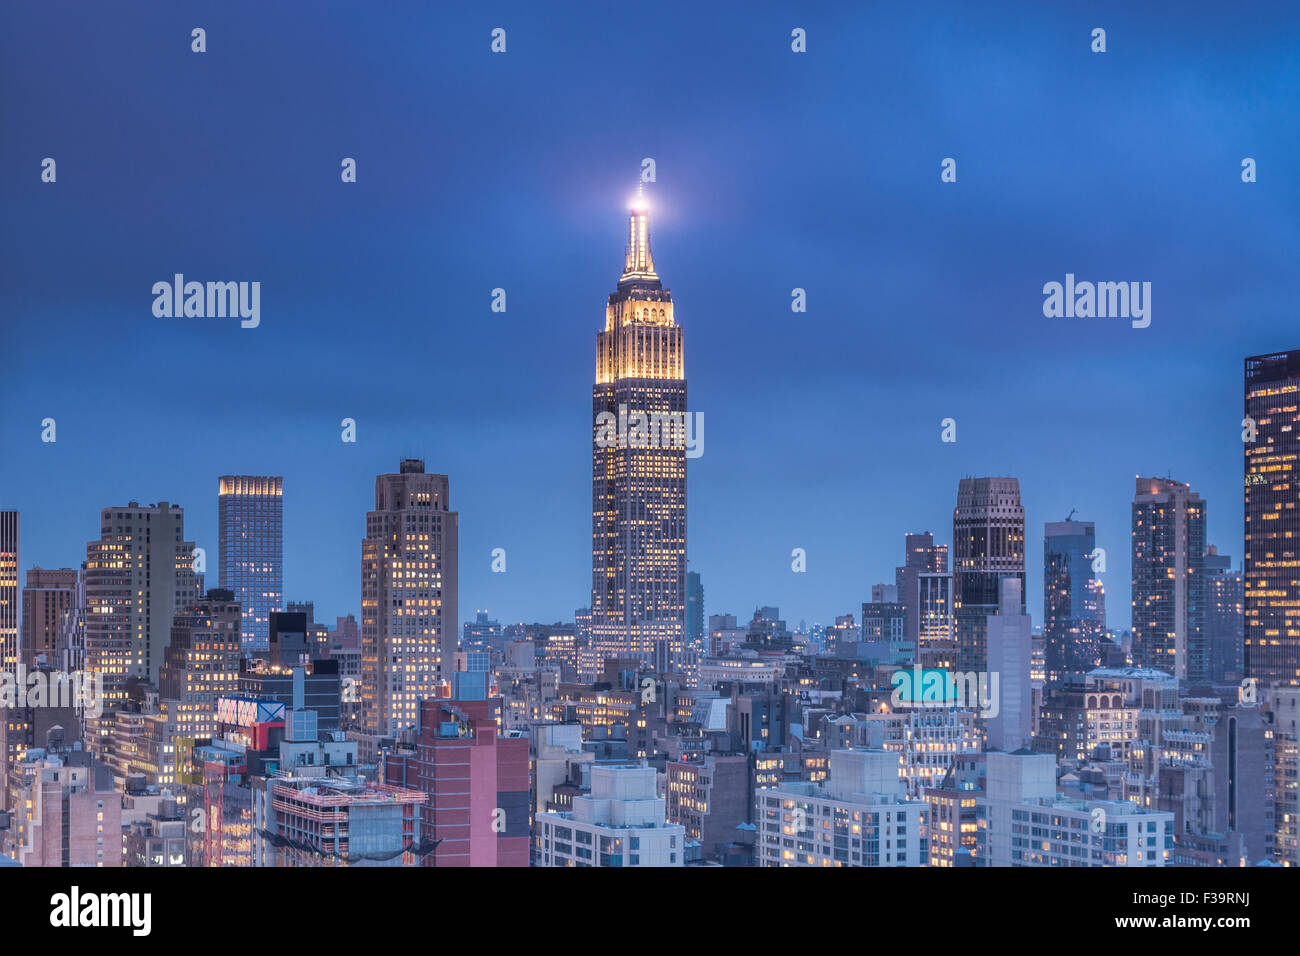 View of The Empire State Building at dusk from 42th avenue in Manhattan. Stock Photo